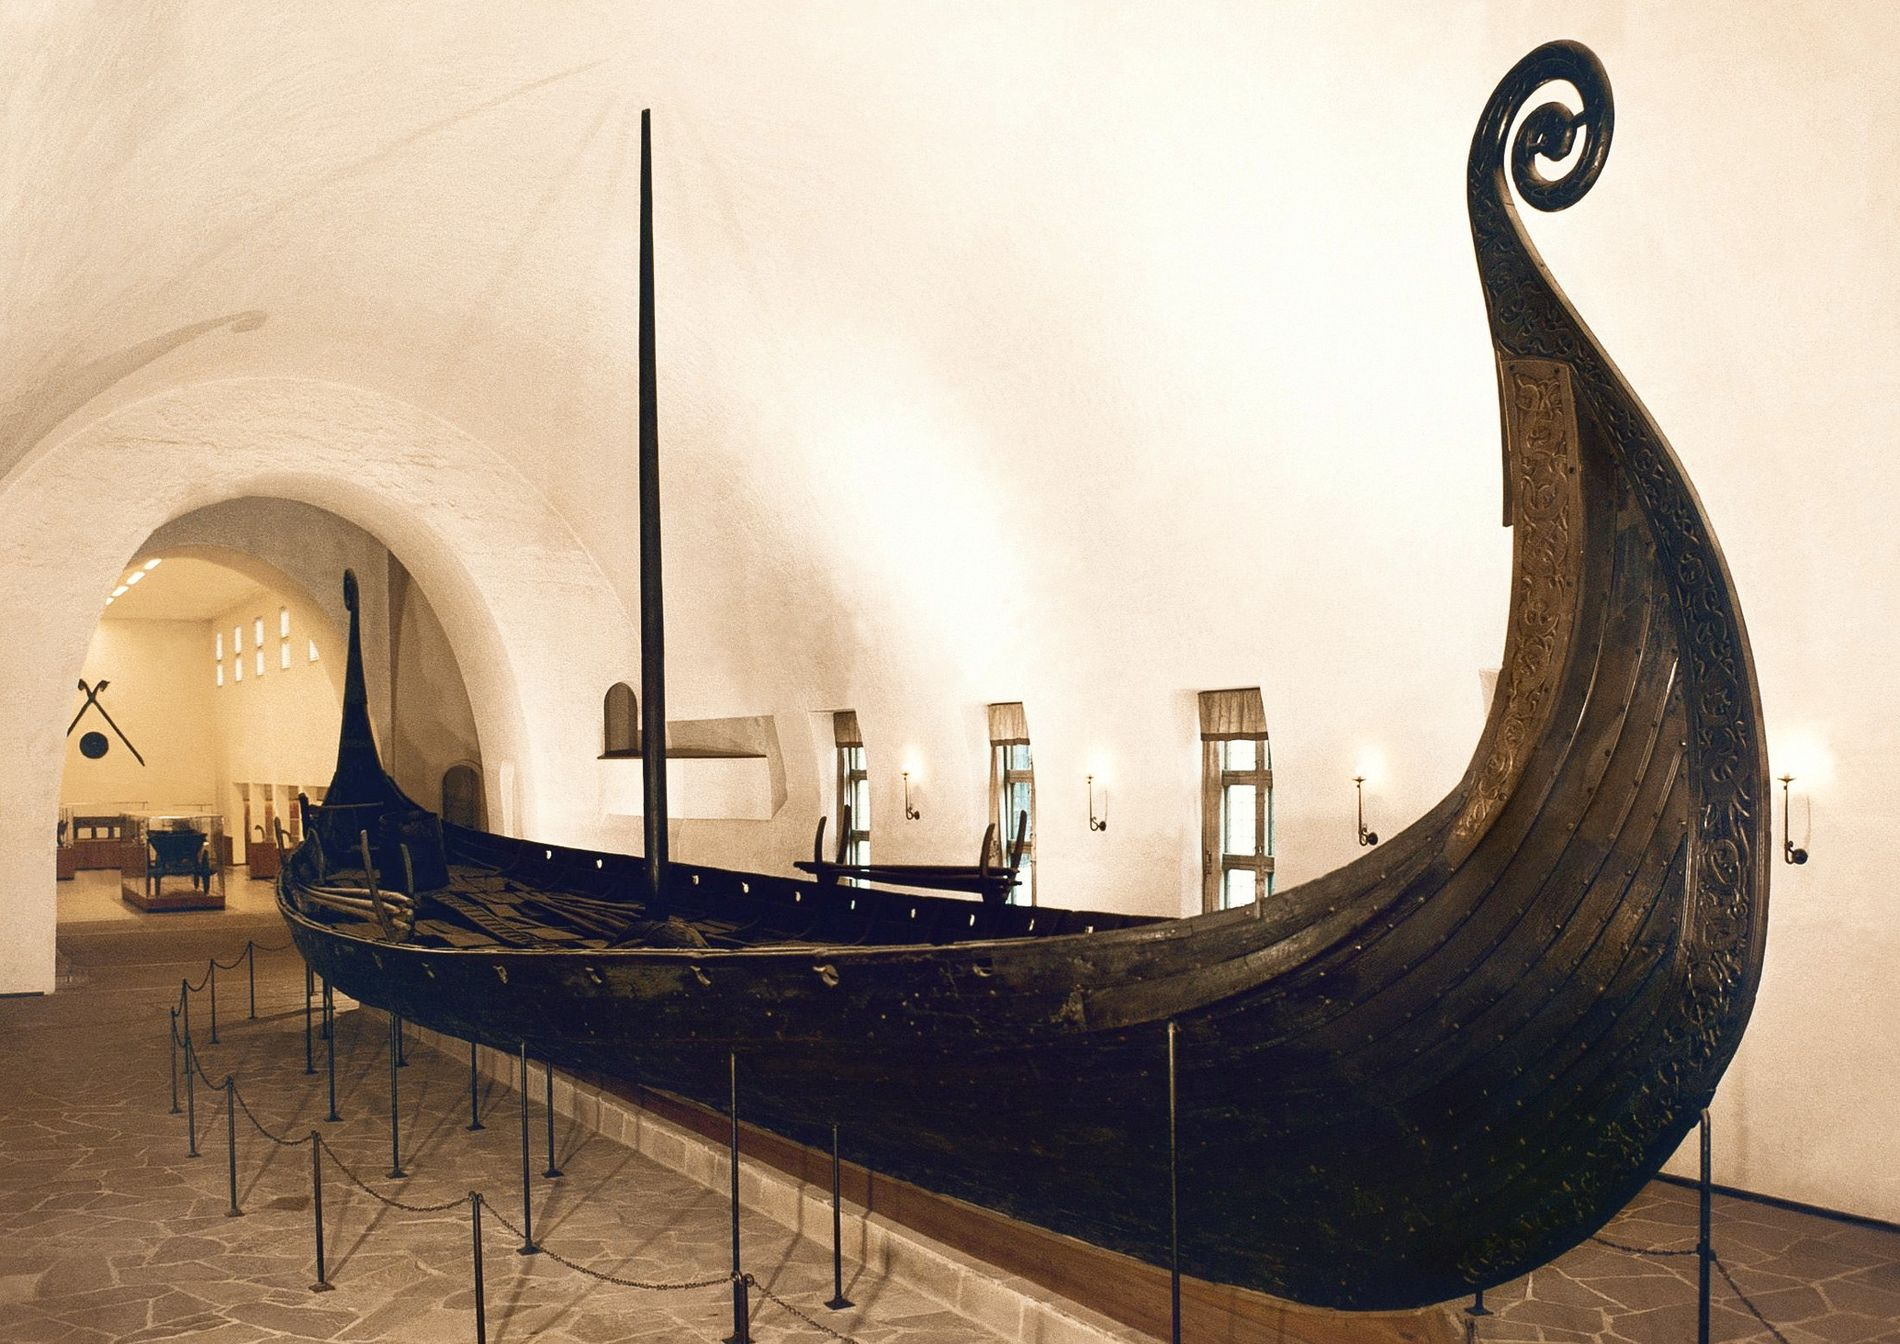 The Oseberg ship is on display in the Viking Ship Museum in Oslo. Built of oak ...